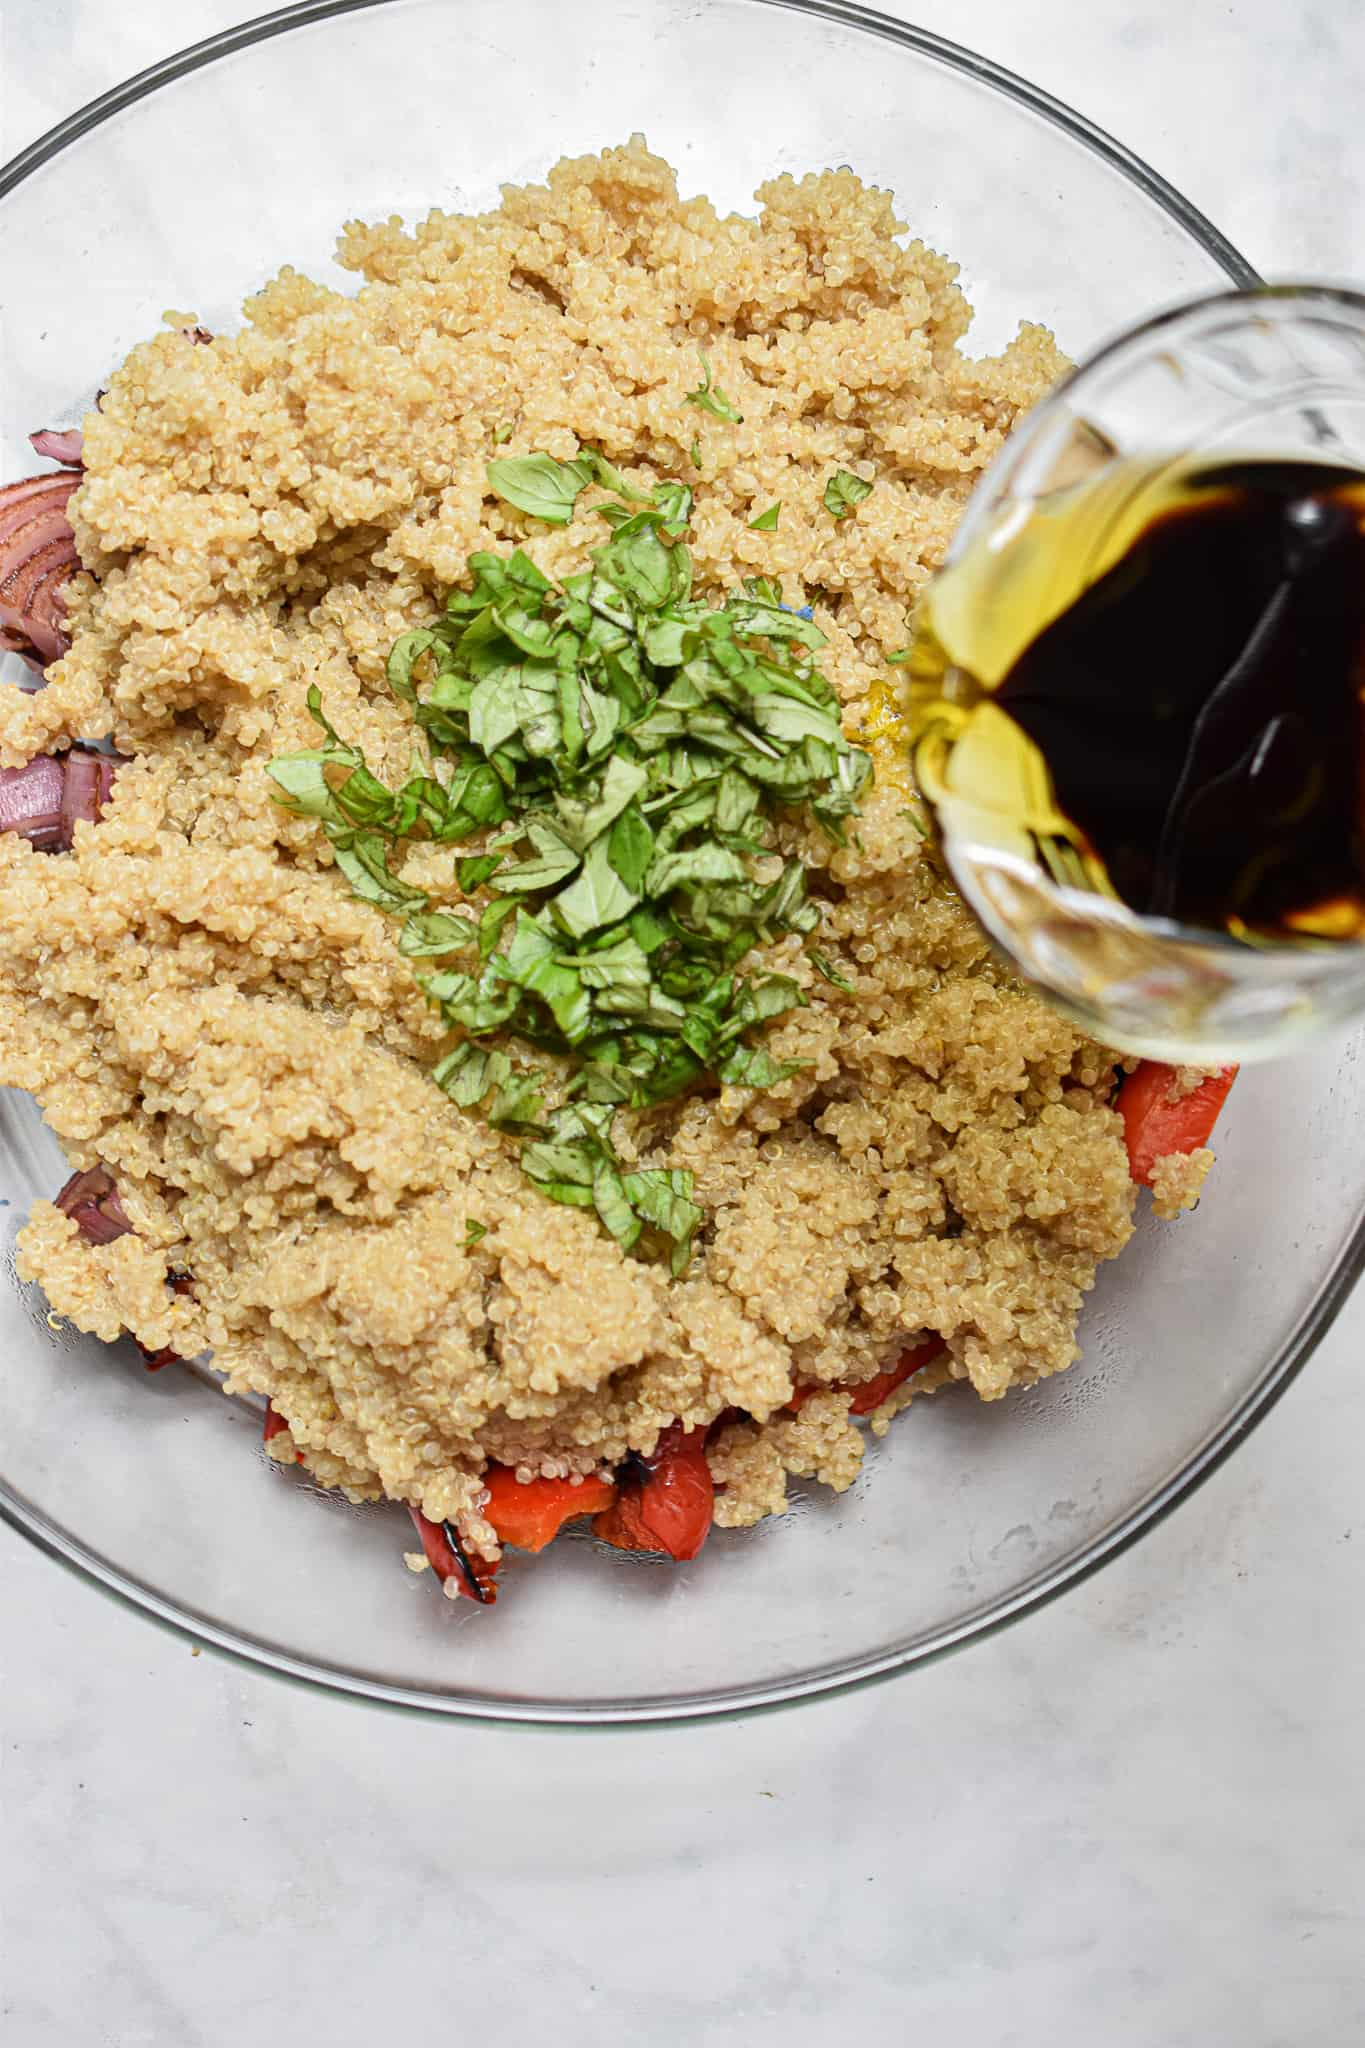 the vinaigrette is poured on top of the quinoa grilled vegetable salad